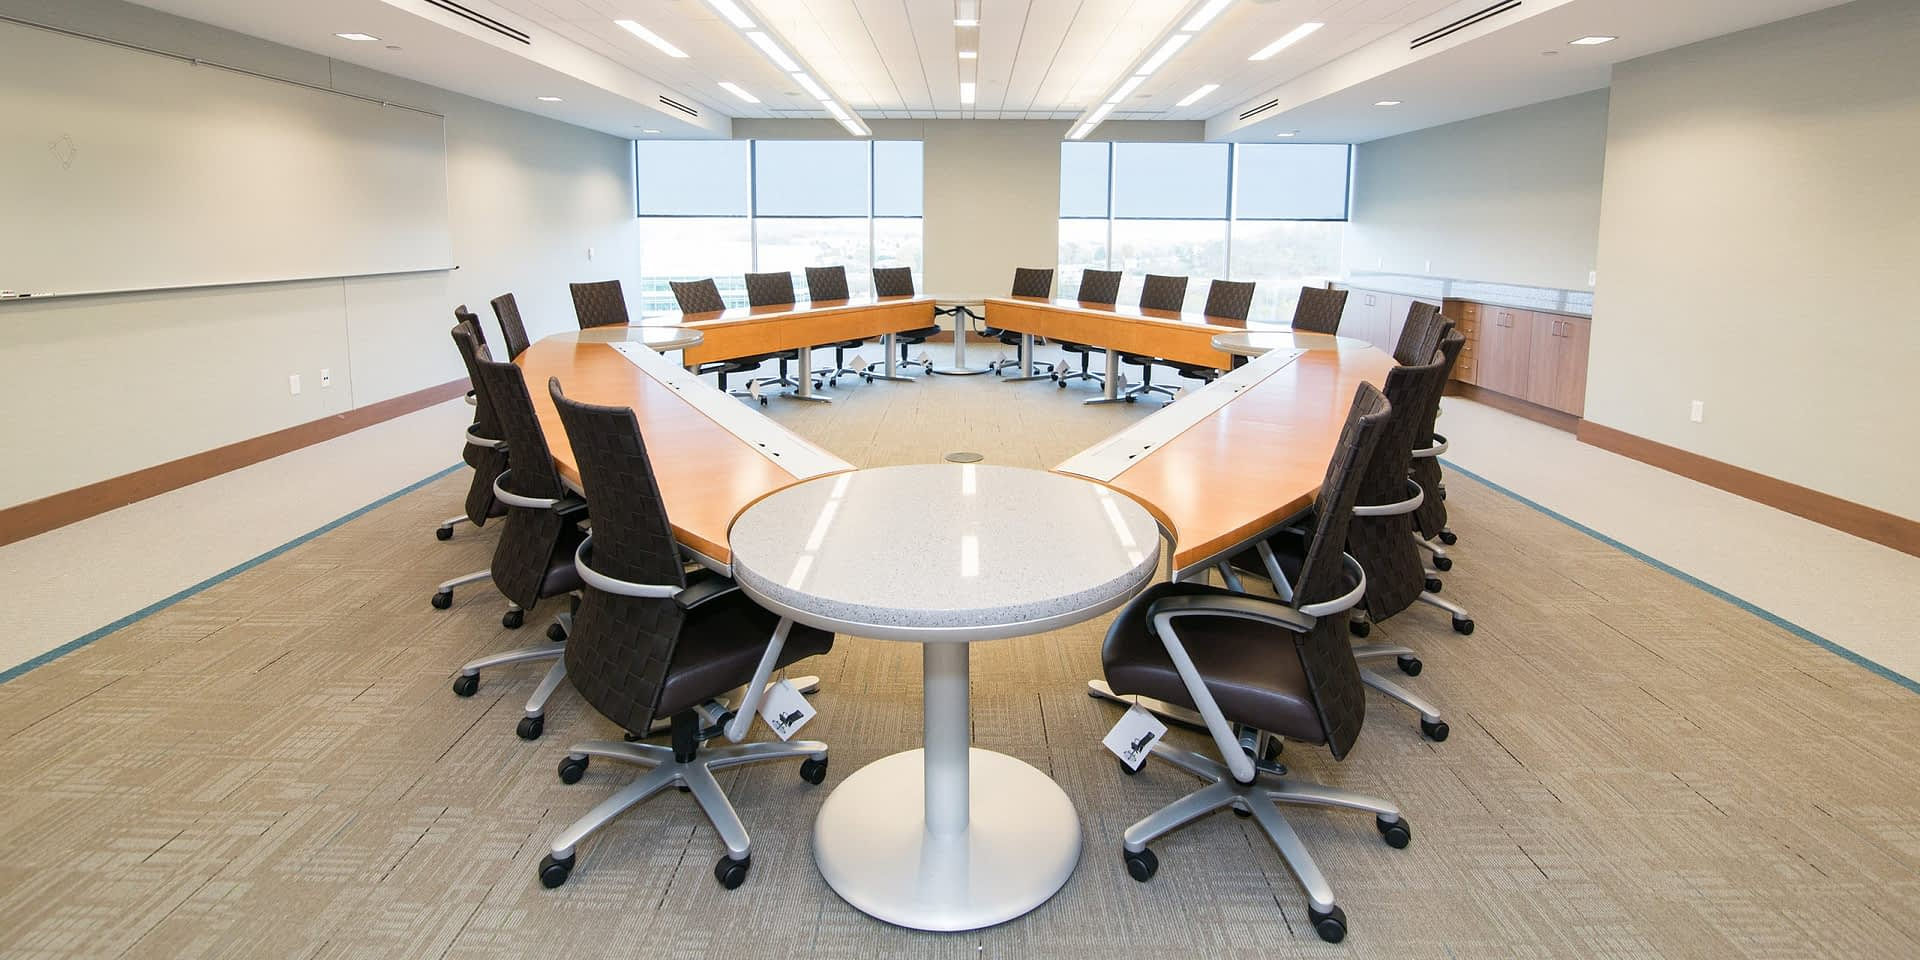 large conference table with many desk chairs around it